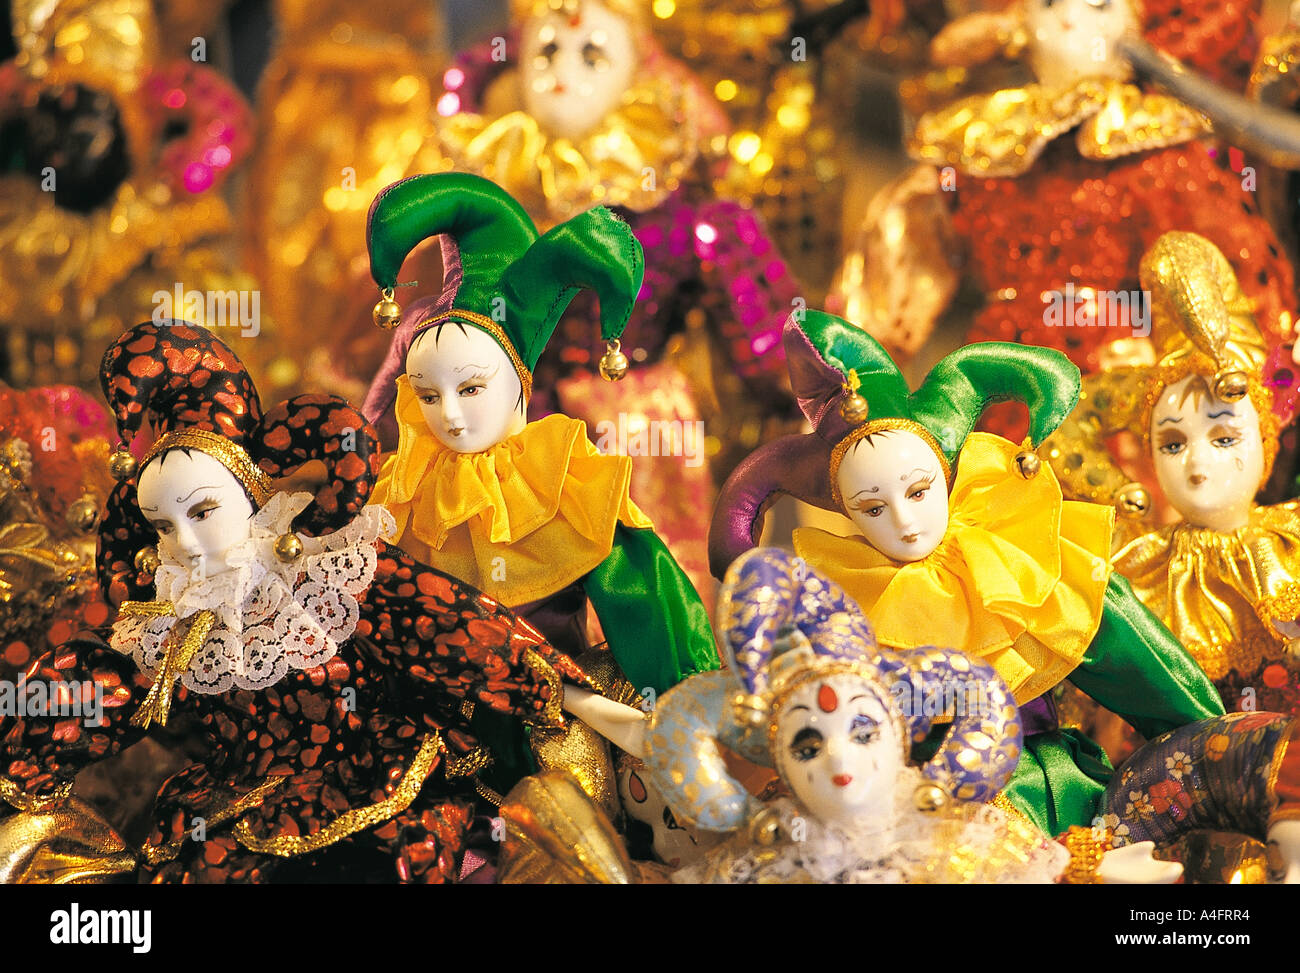 Mardi Gras dolls in New Orleans - Stock Image